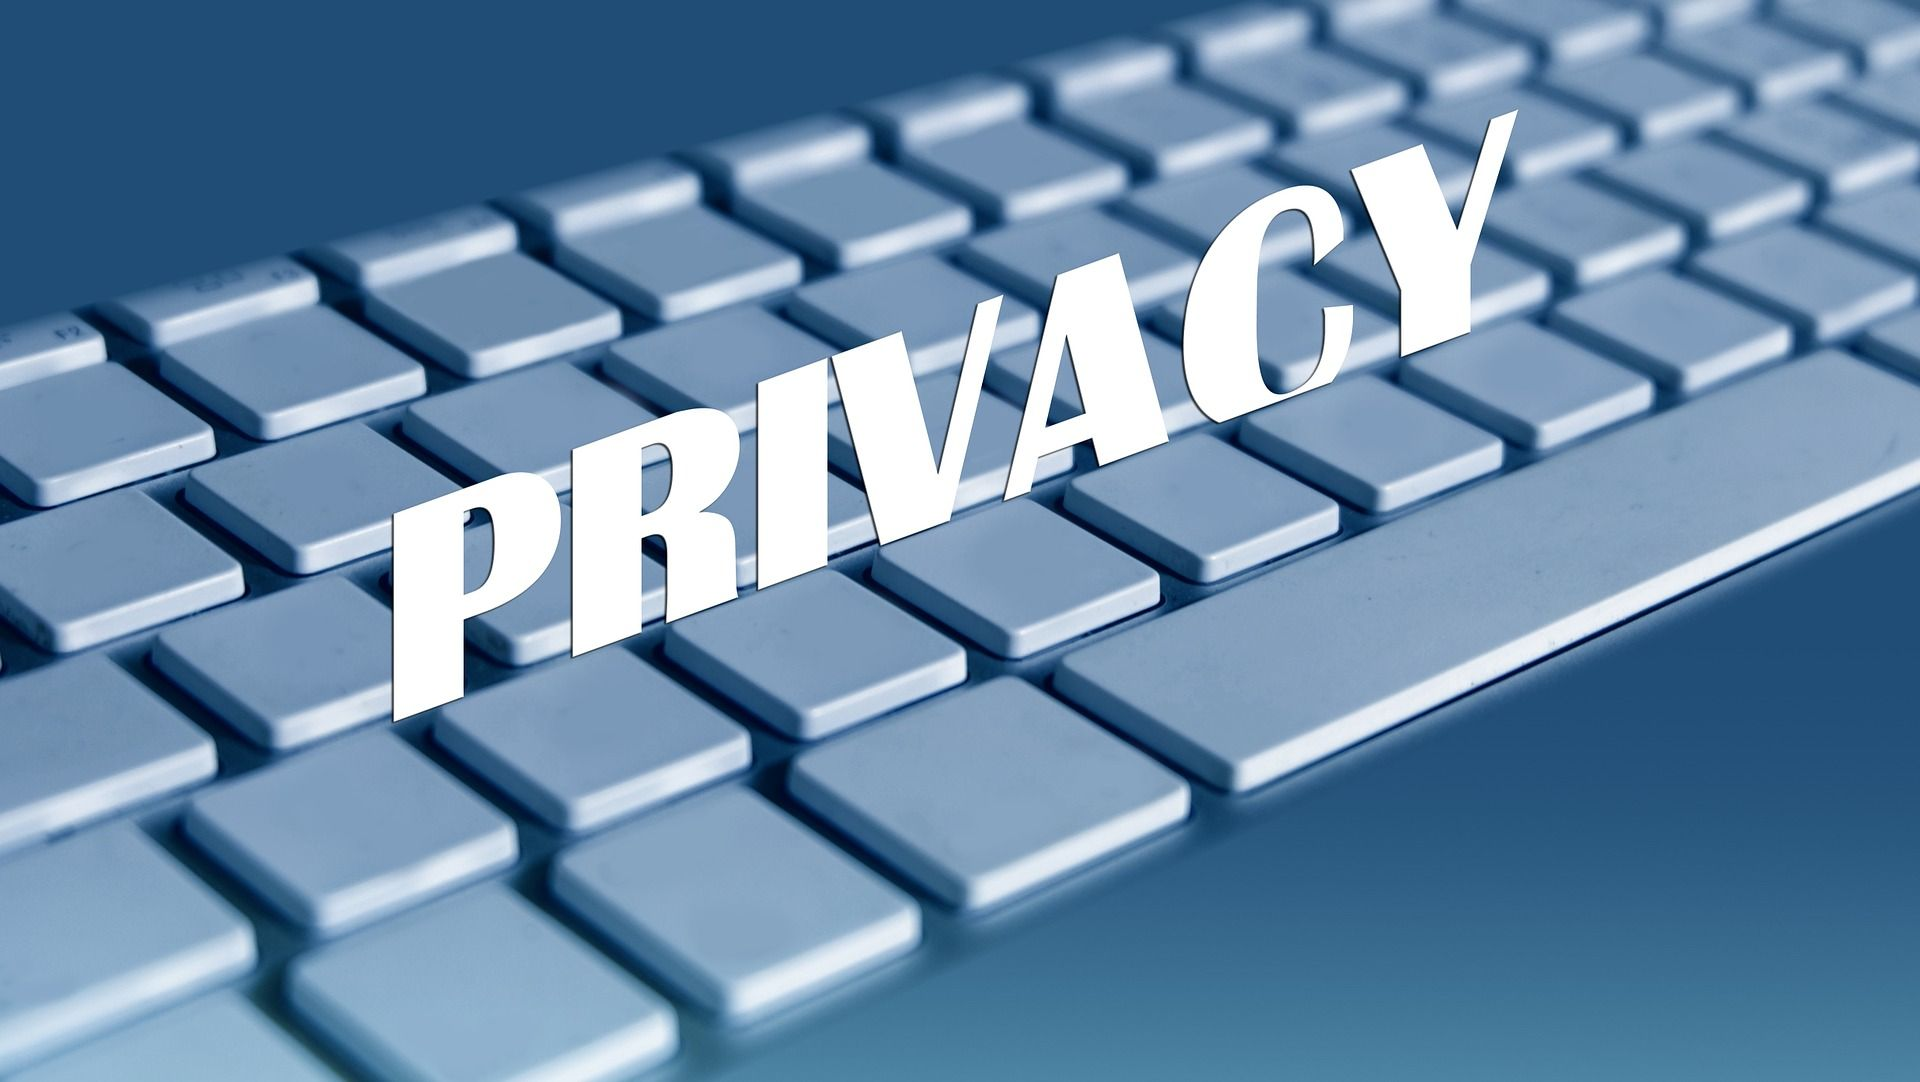 /data-privacy-in-social-media-matters-and-heres-why-8g2e33mh feature image